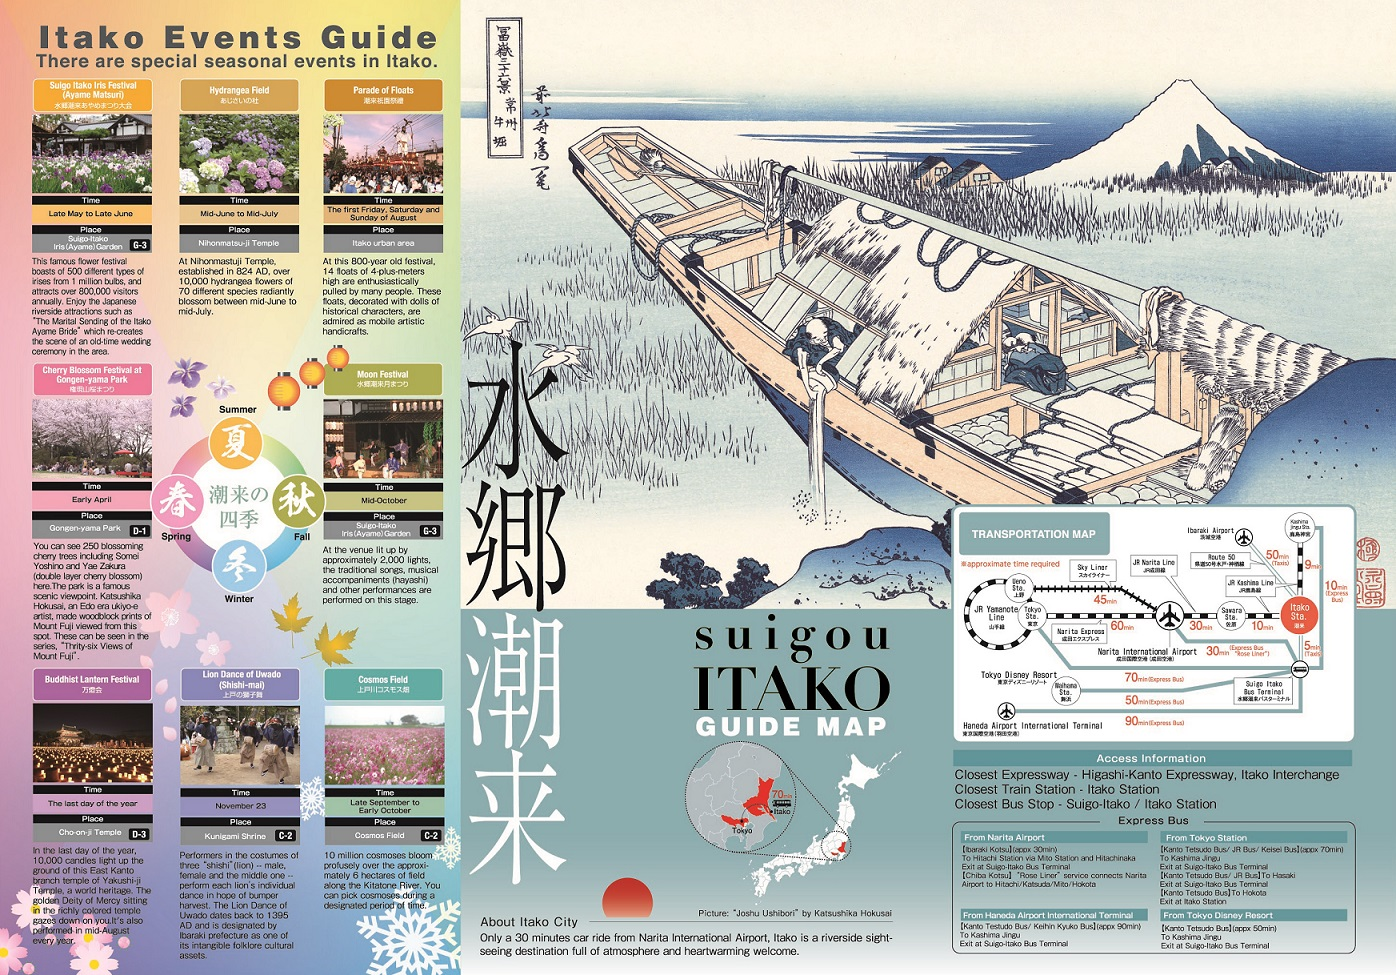 SUIGO ITAKO GUIDE MAP